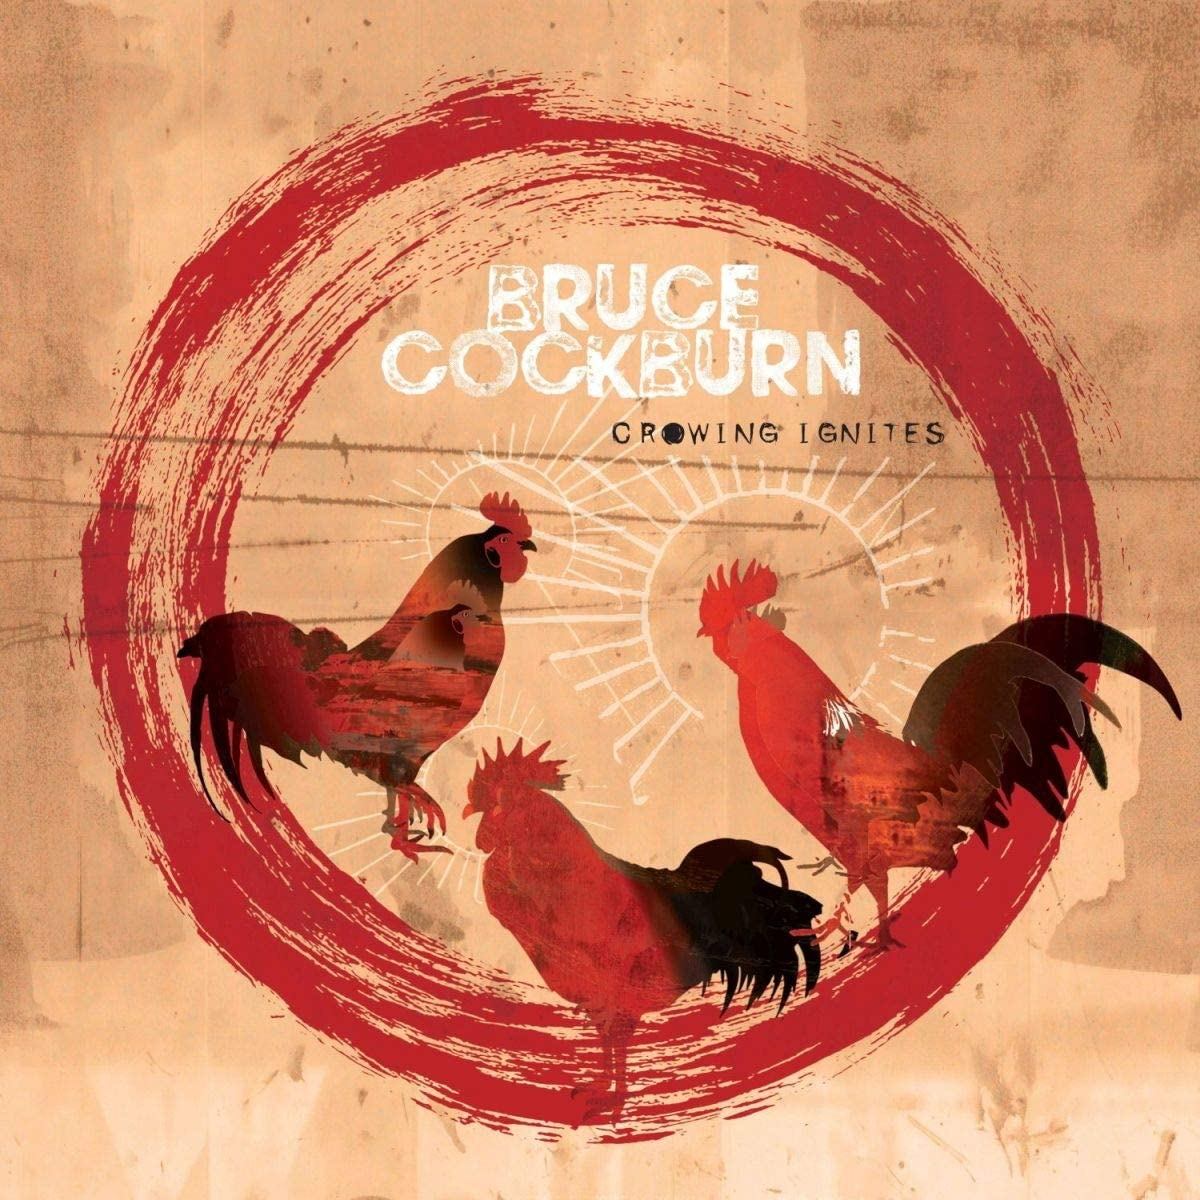 Cockburn, Bruce/Crowing Ignites [LP]